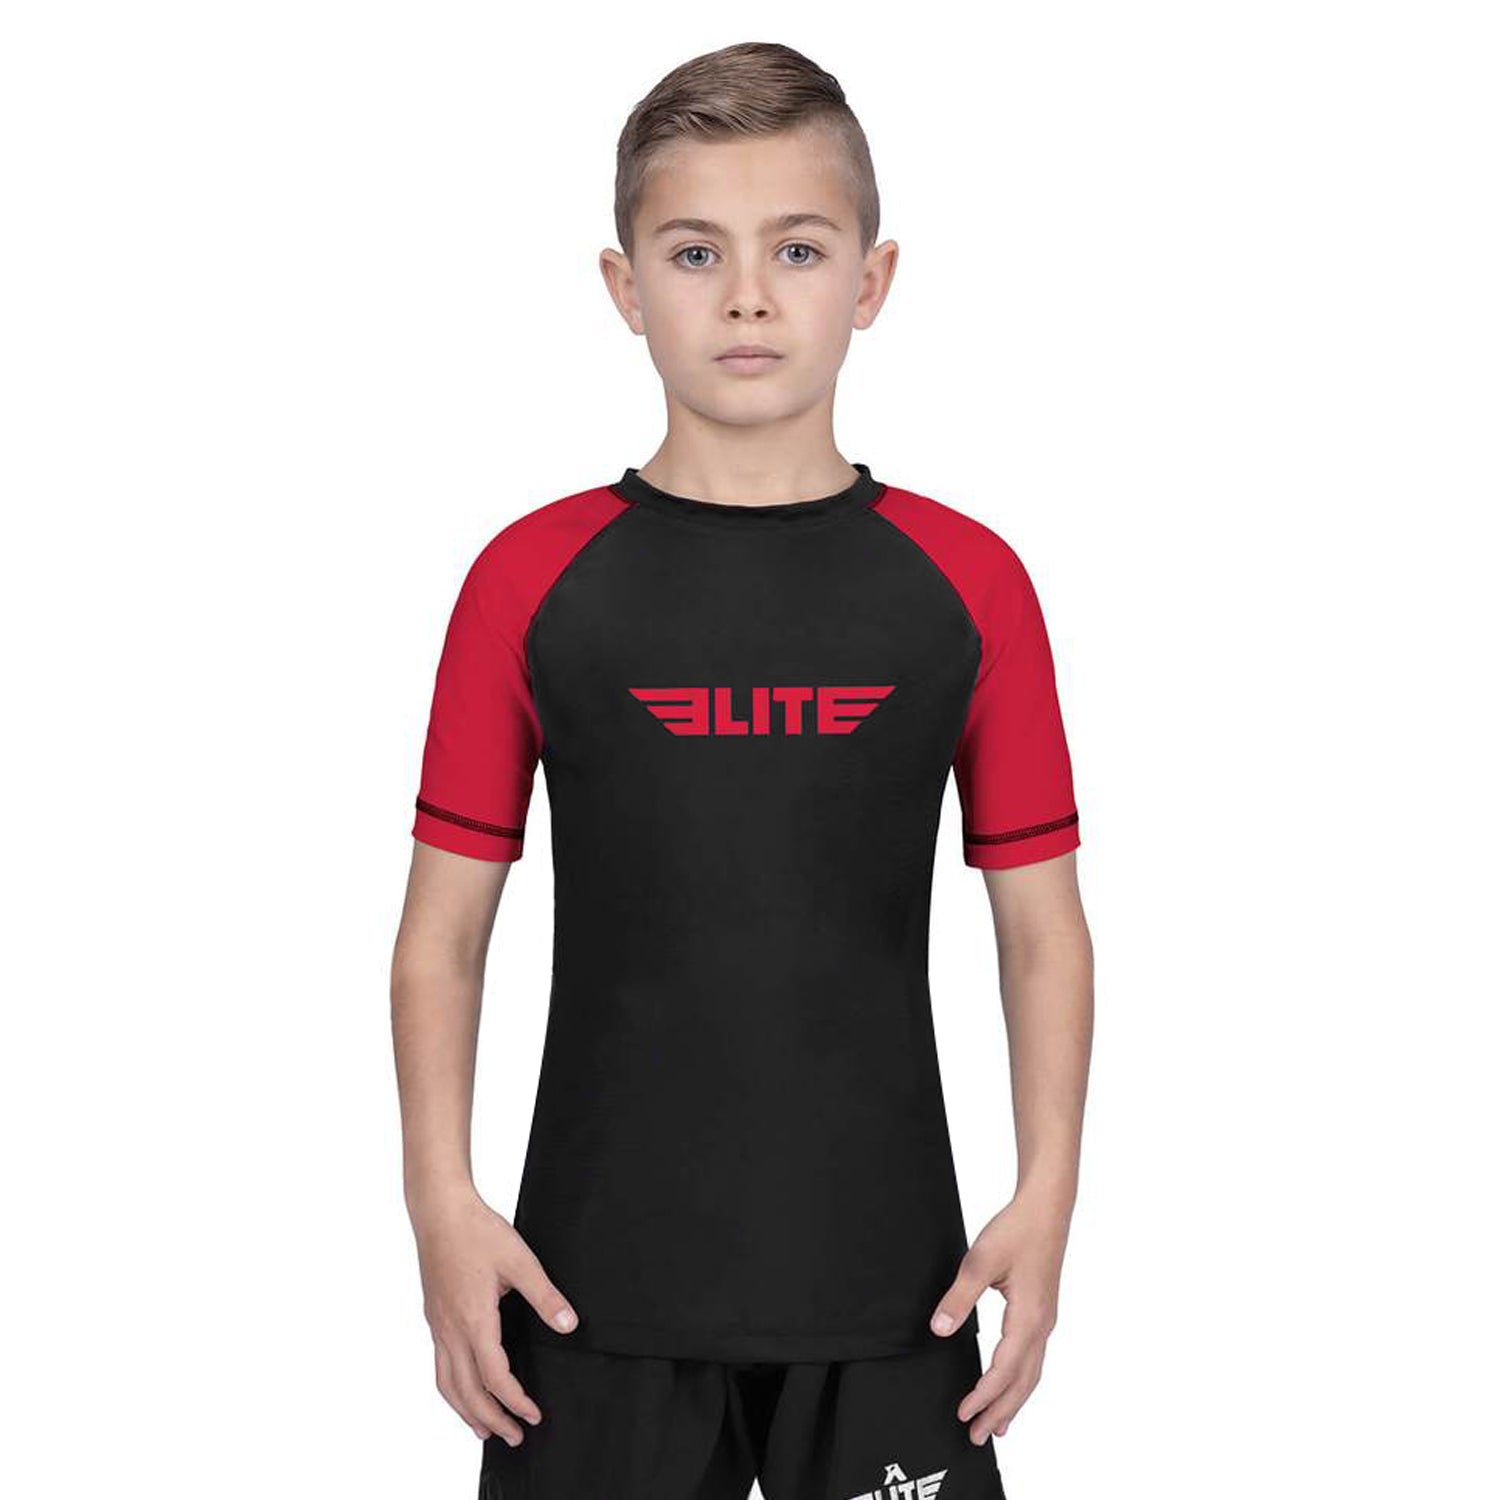 Elite Sports Standard Red/Black Short Sleeve Kids Judo Rash Guard